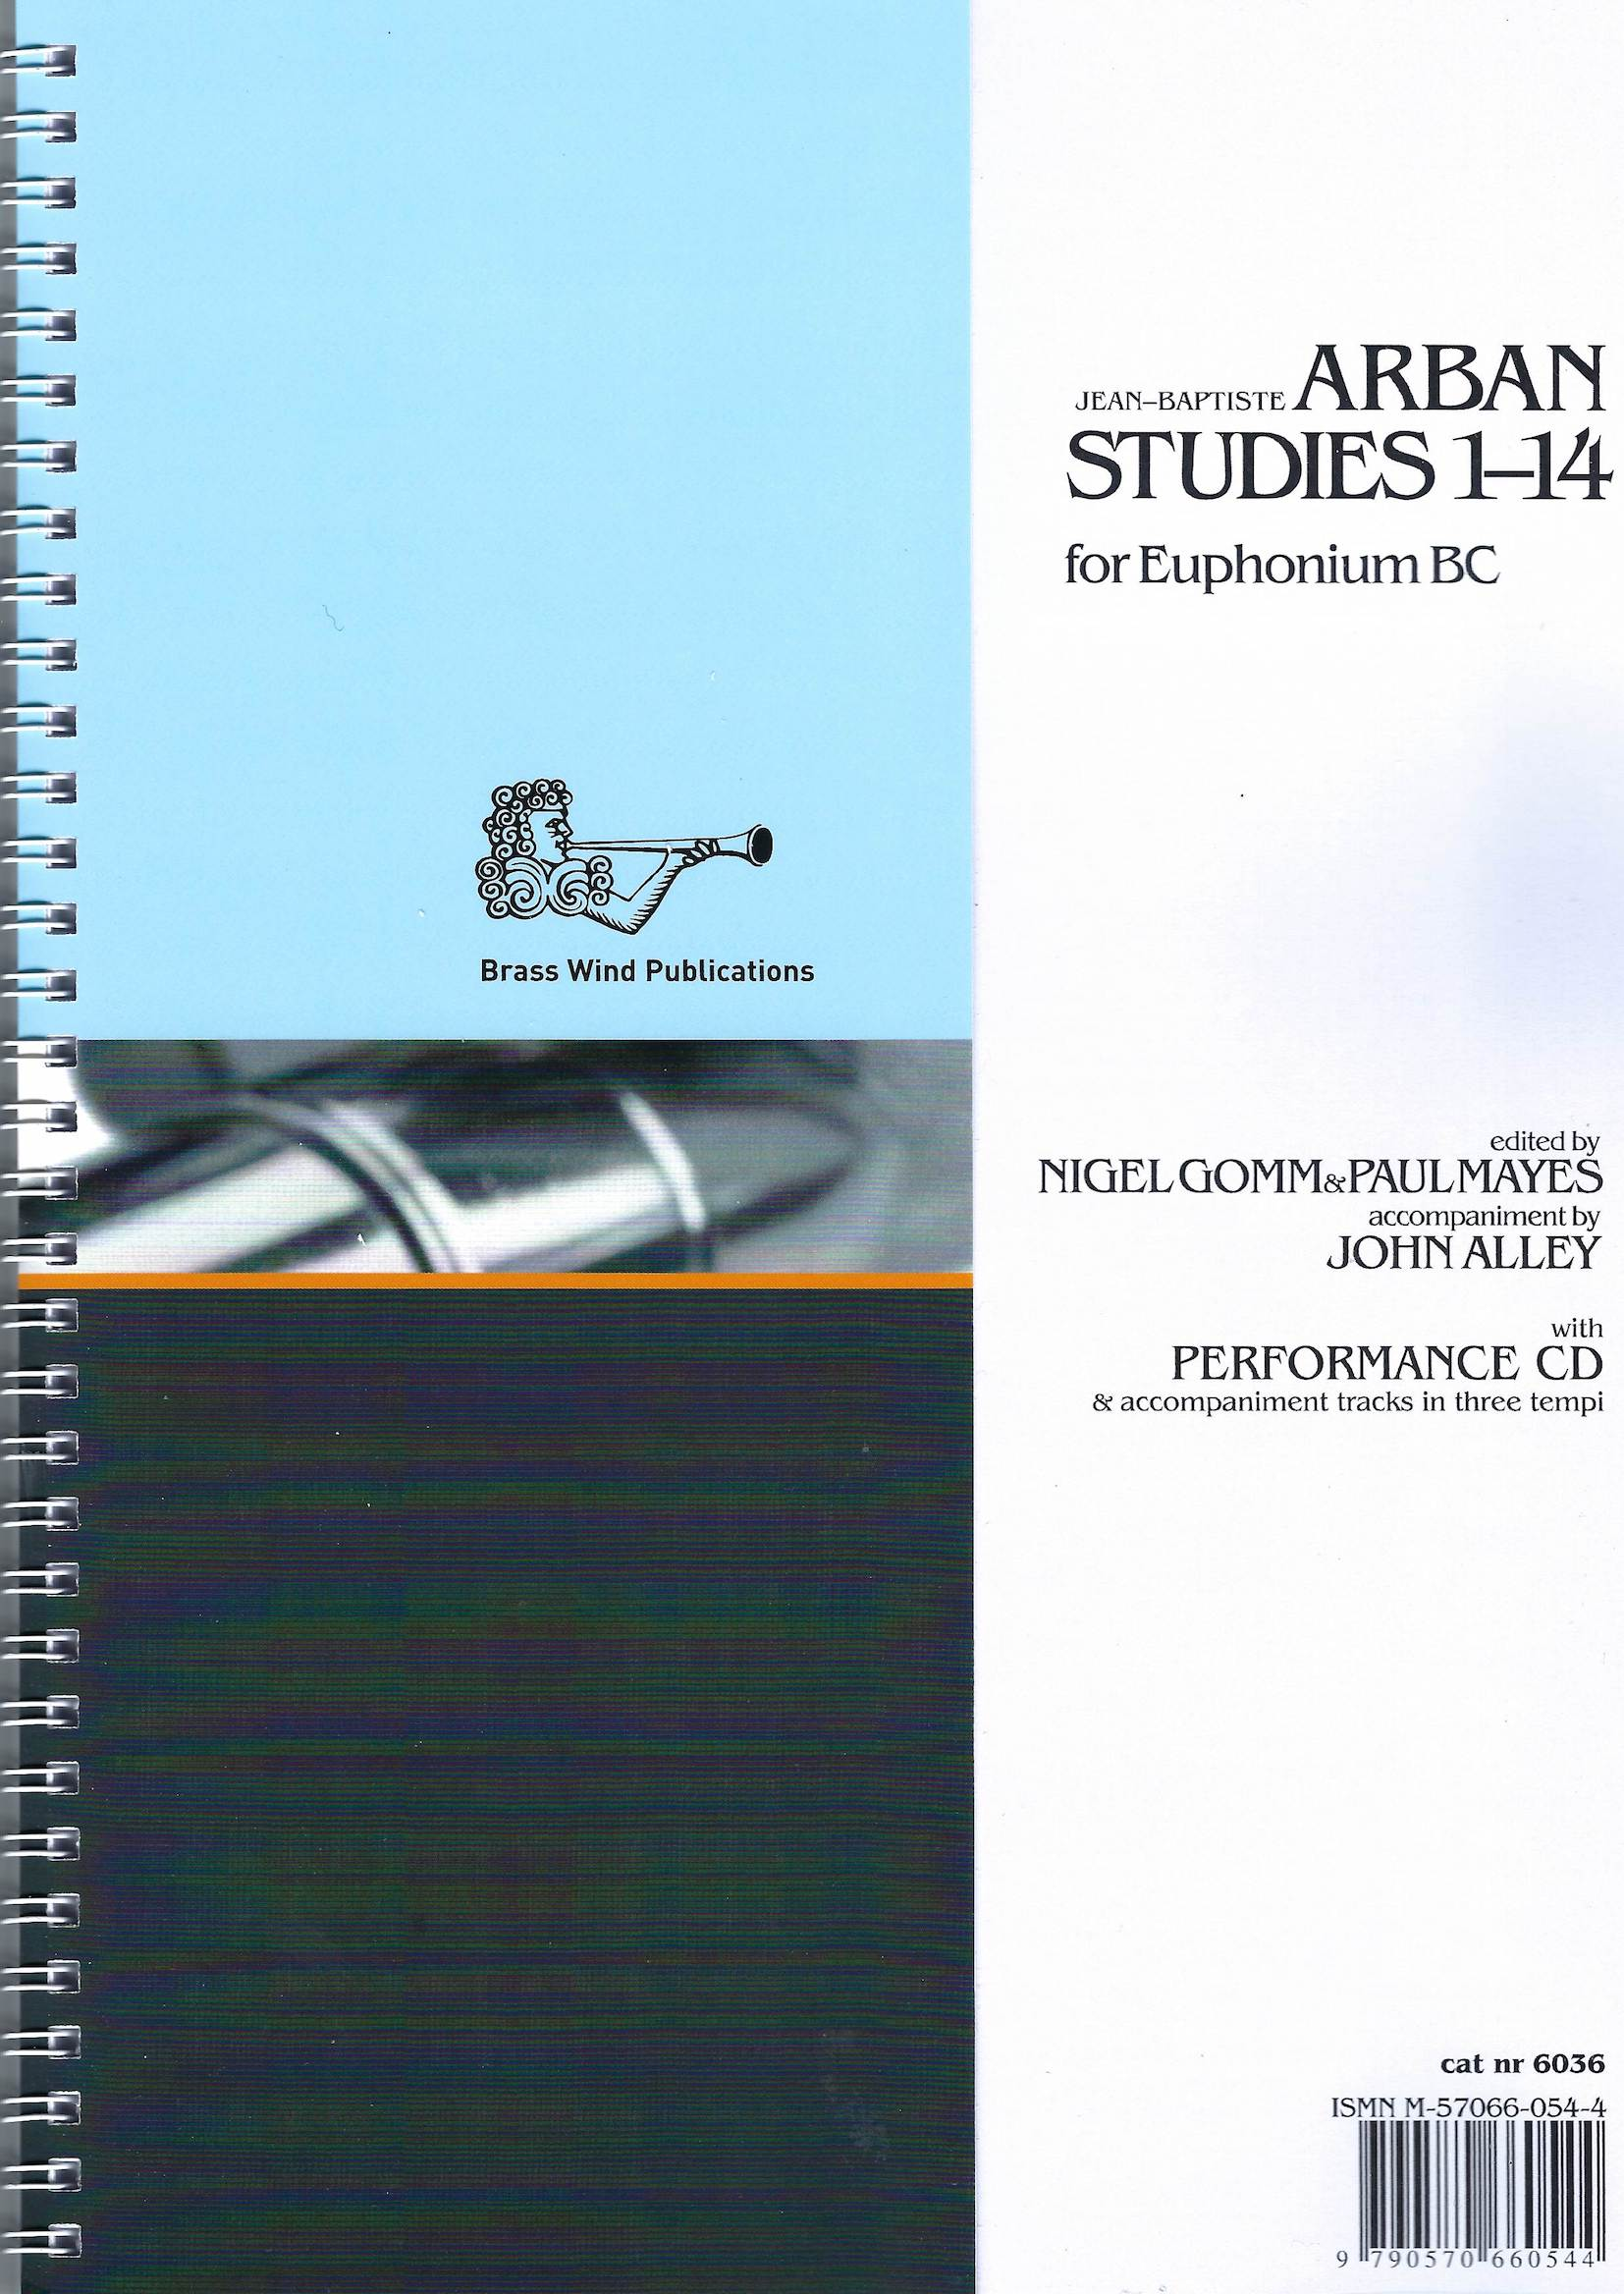 Arban Studies 1-14 - Ed. Gomm and Mayes (solo part, piano part and 2CDs) Bass Clef version